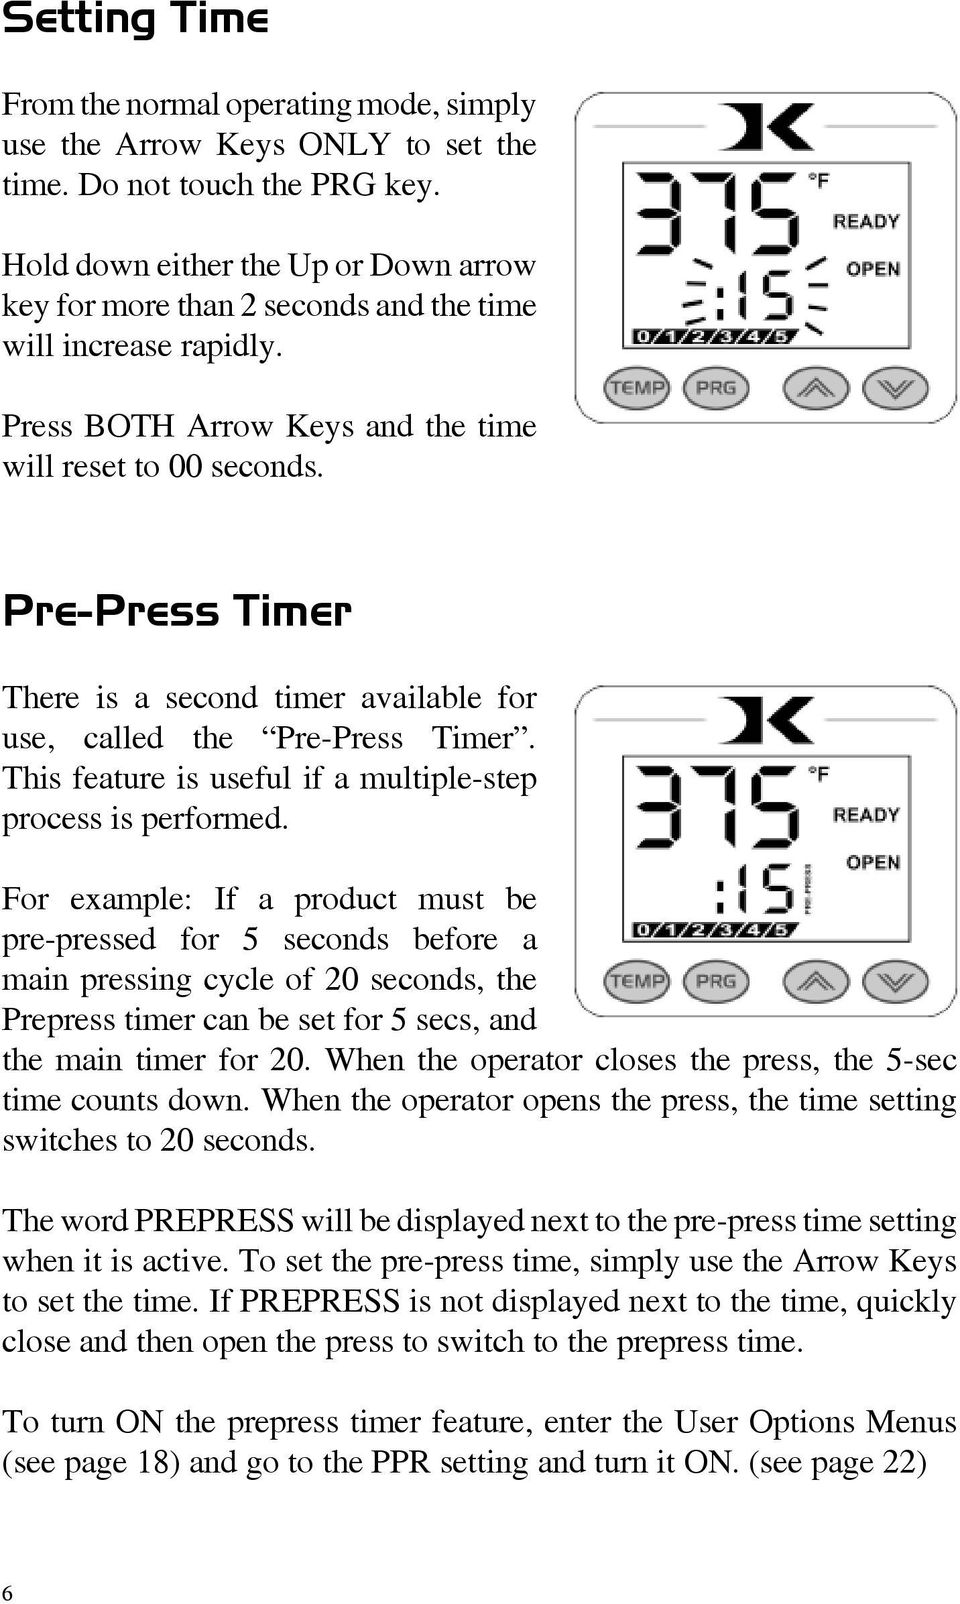 Digital Combo Multi Purpose Press Version Pdf Tanning Bed Timer Wiring Diagram Pre There Is A Second Available For Use Called The